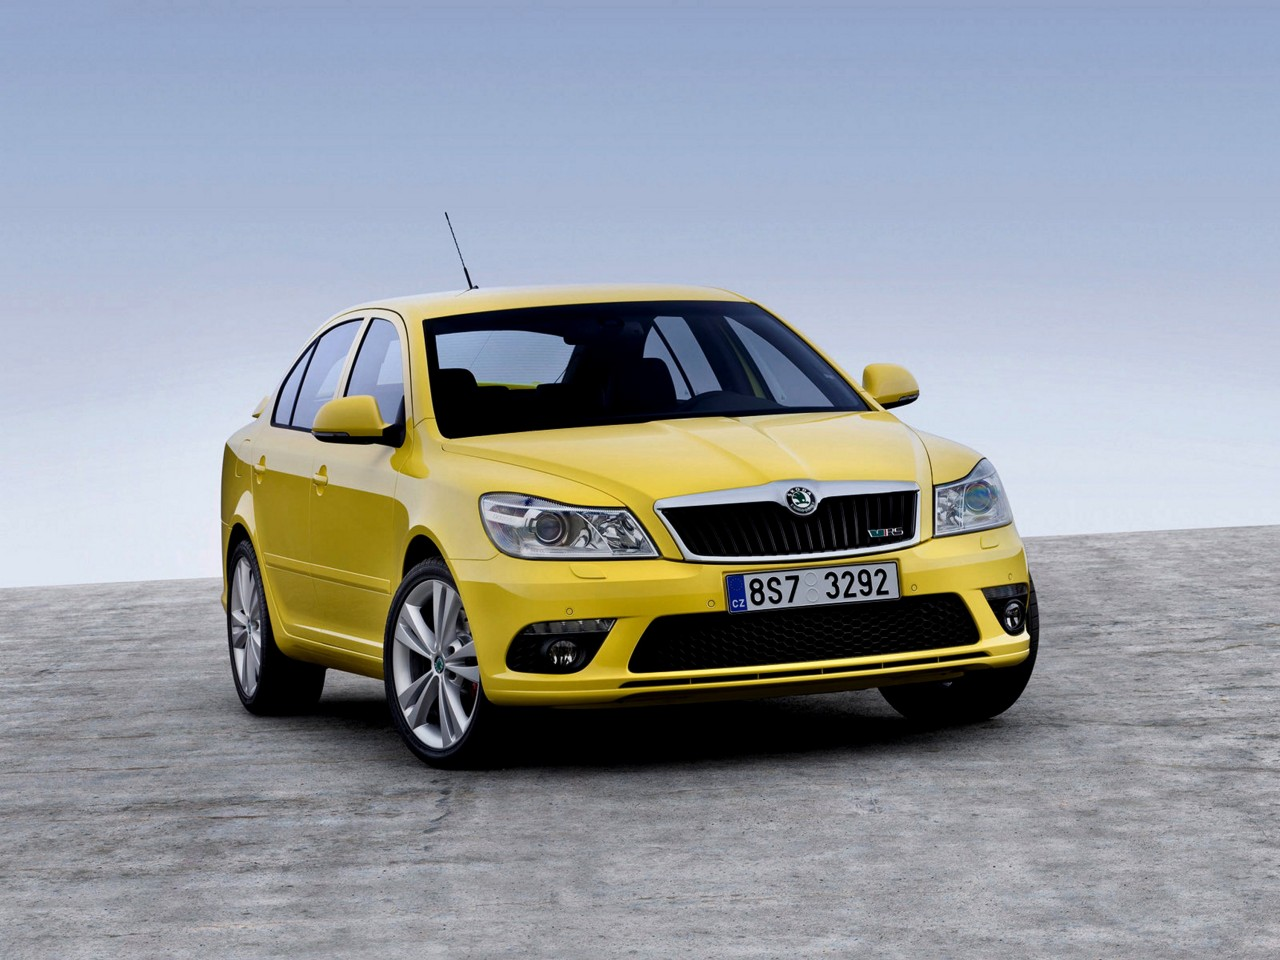 2003 Skoda Roomster Concept photo - 1